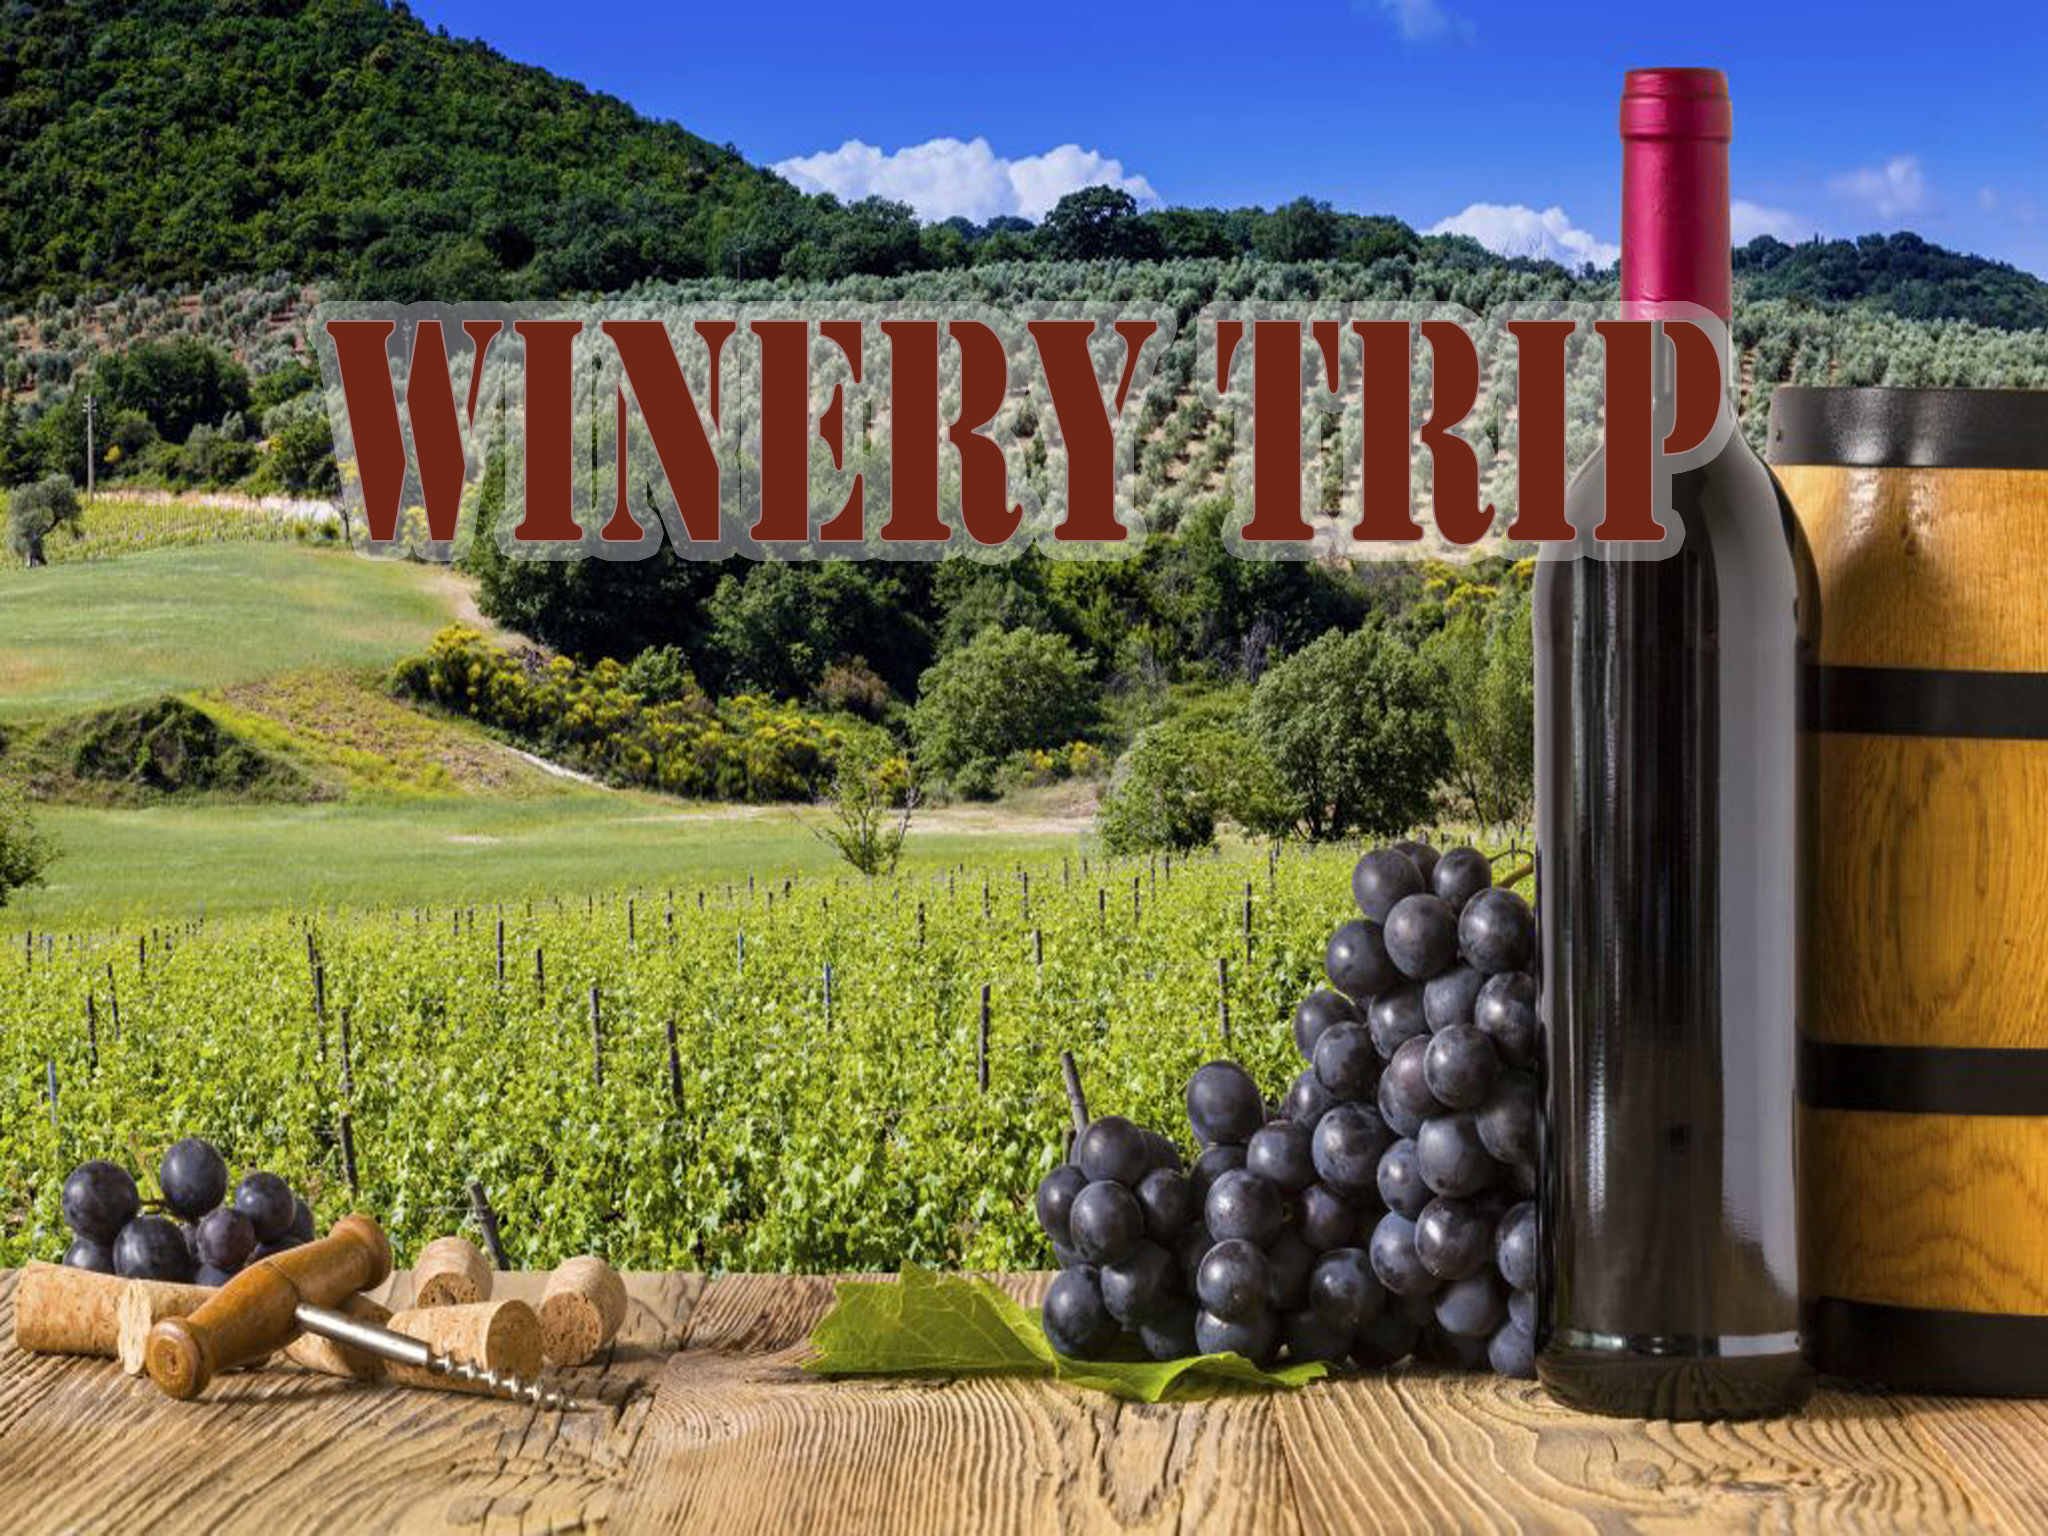 WineryTripGraphic